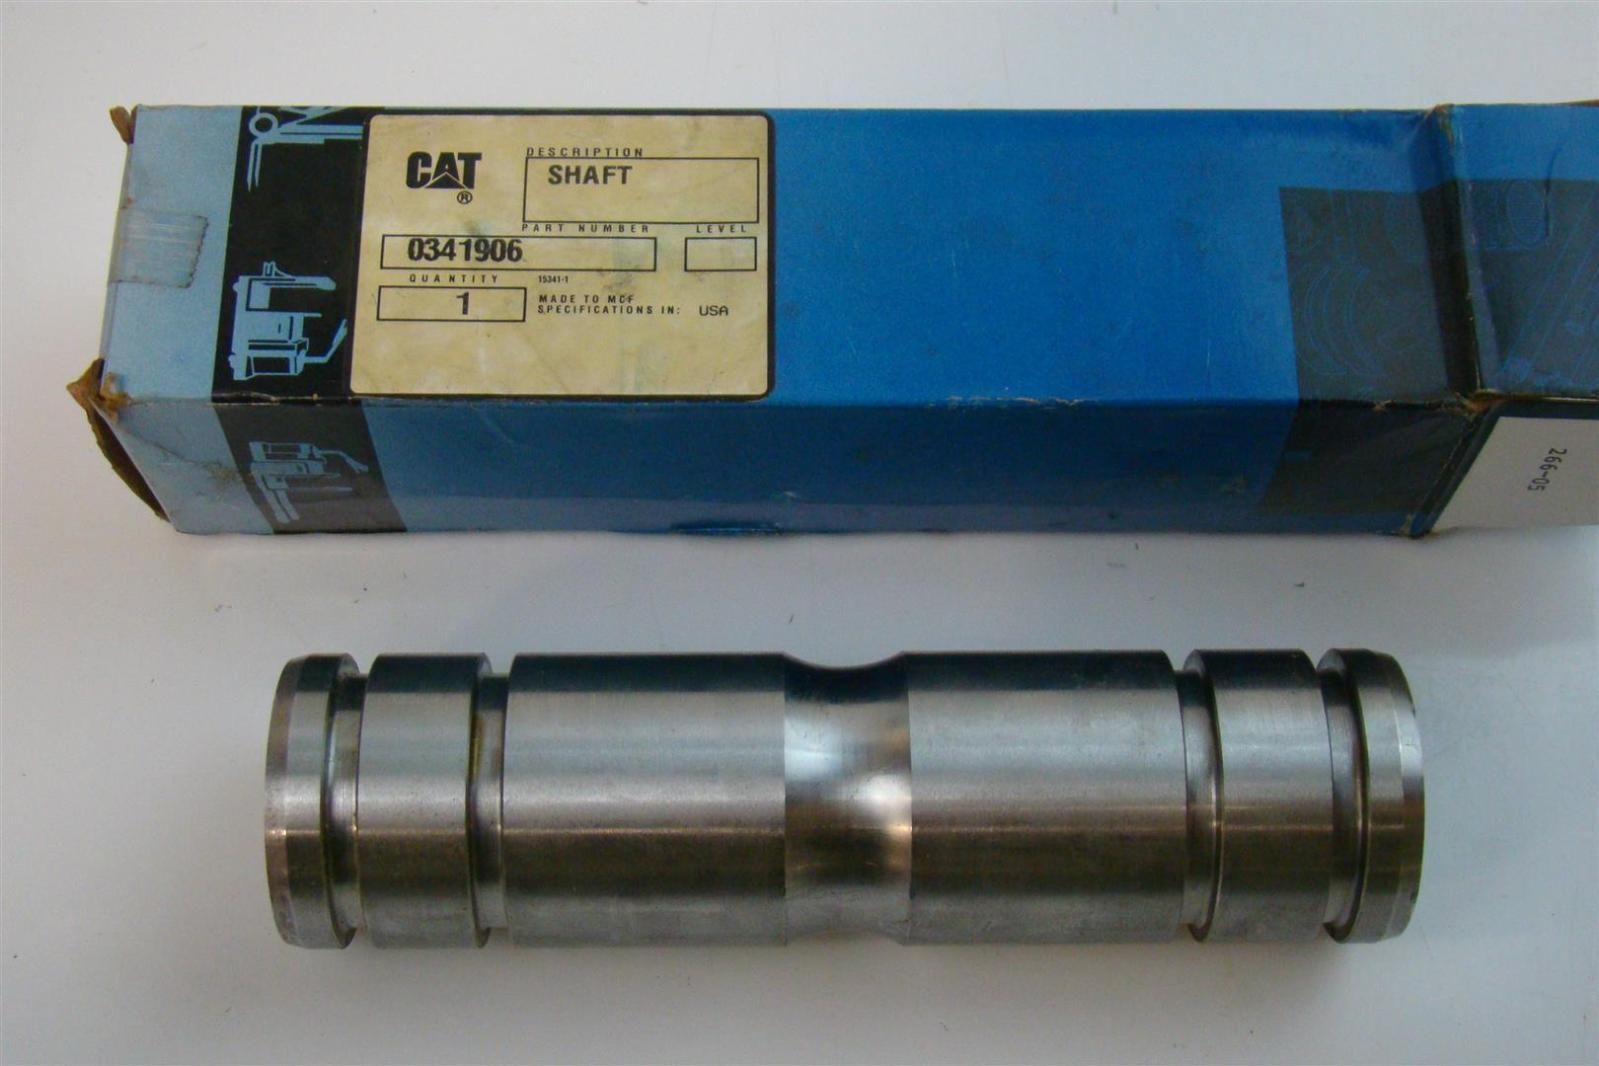 CAT Shaft OEM NOS CAT Lift Truck Forklift 0341906